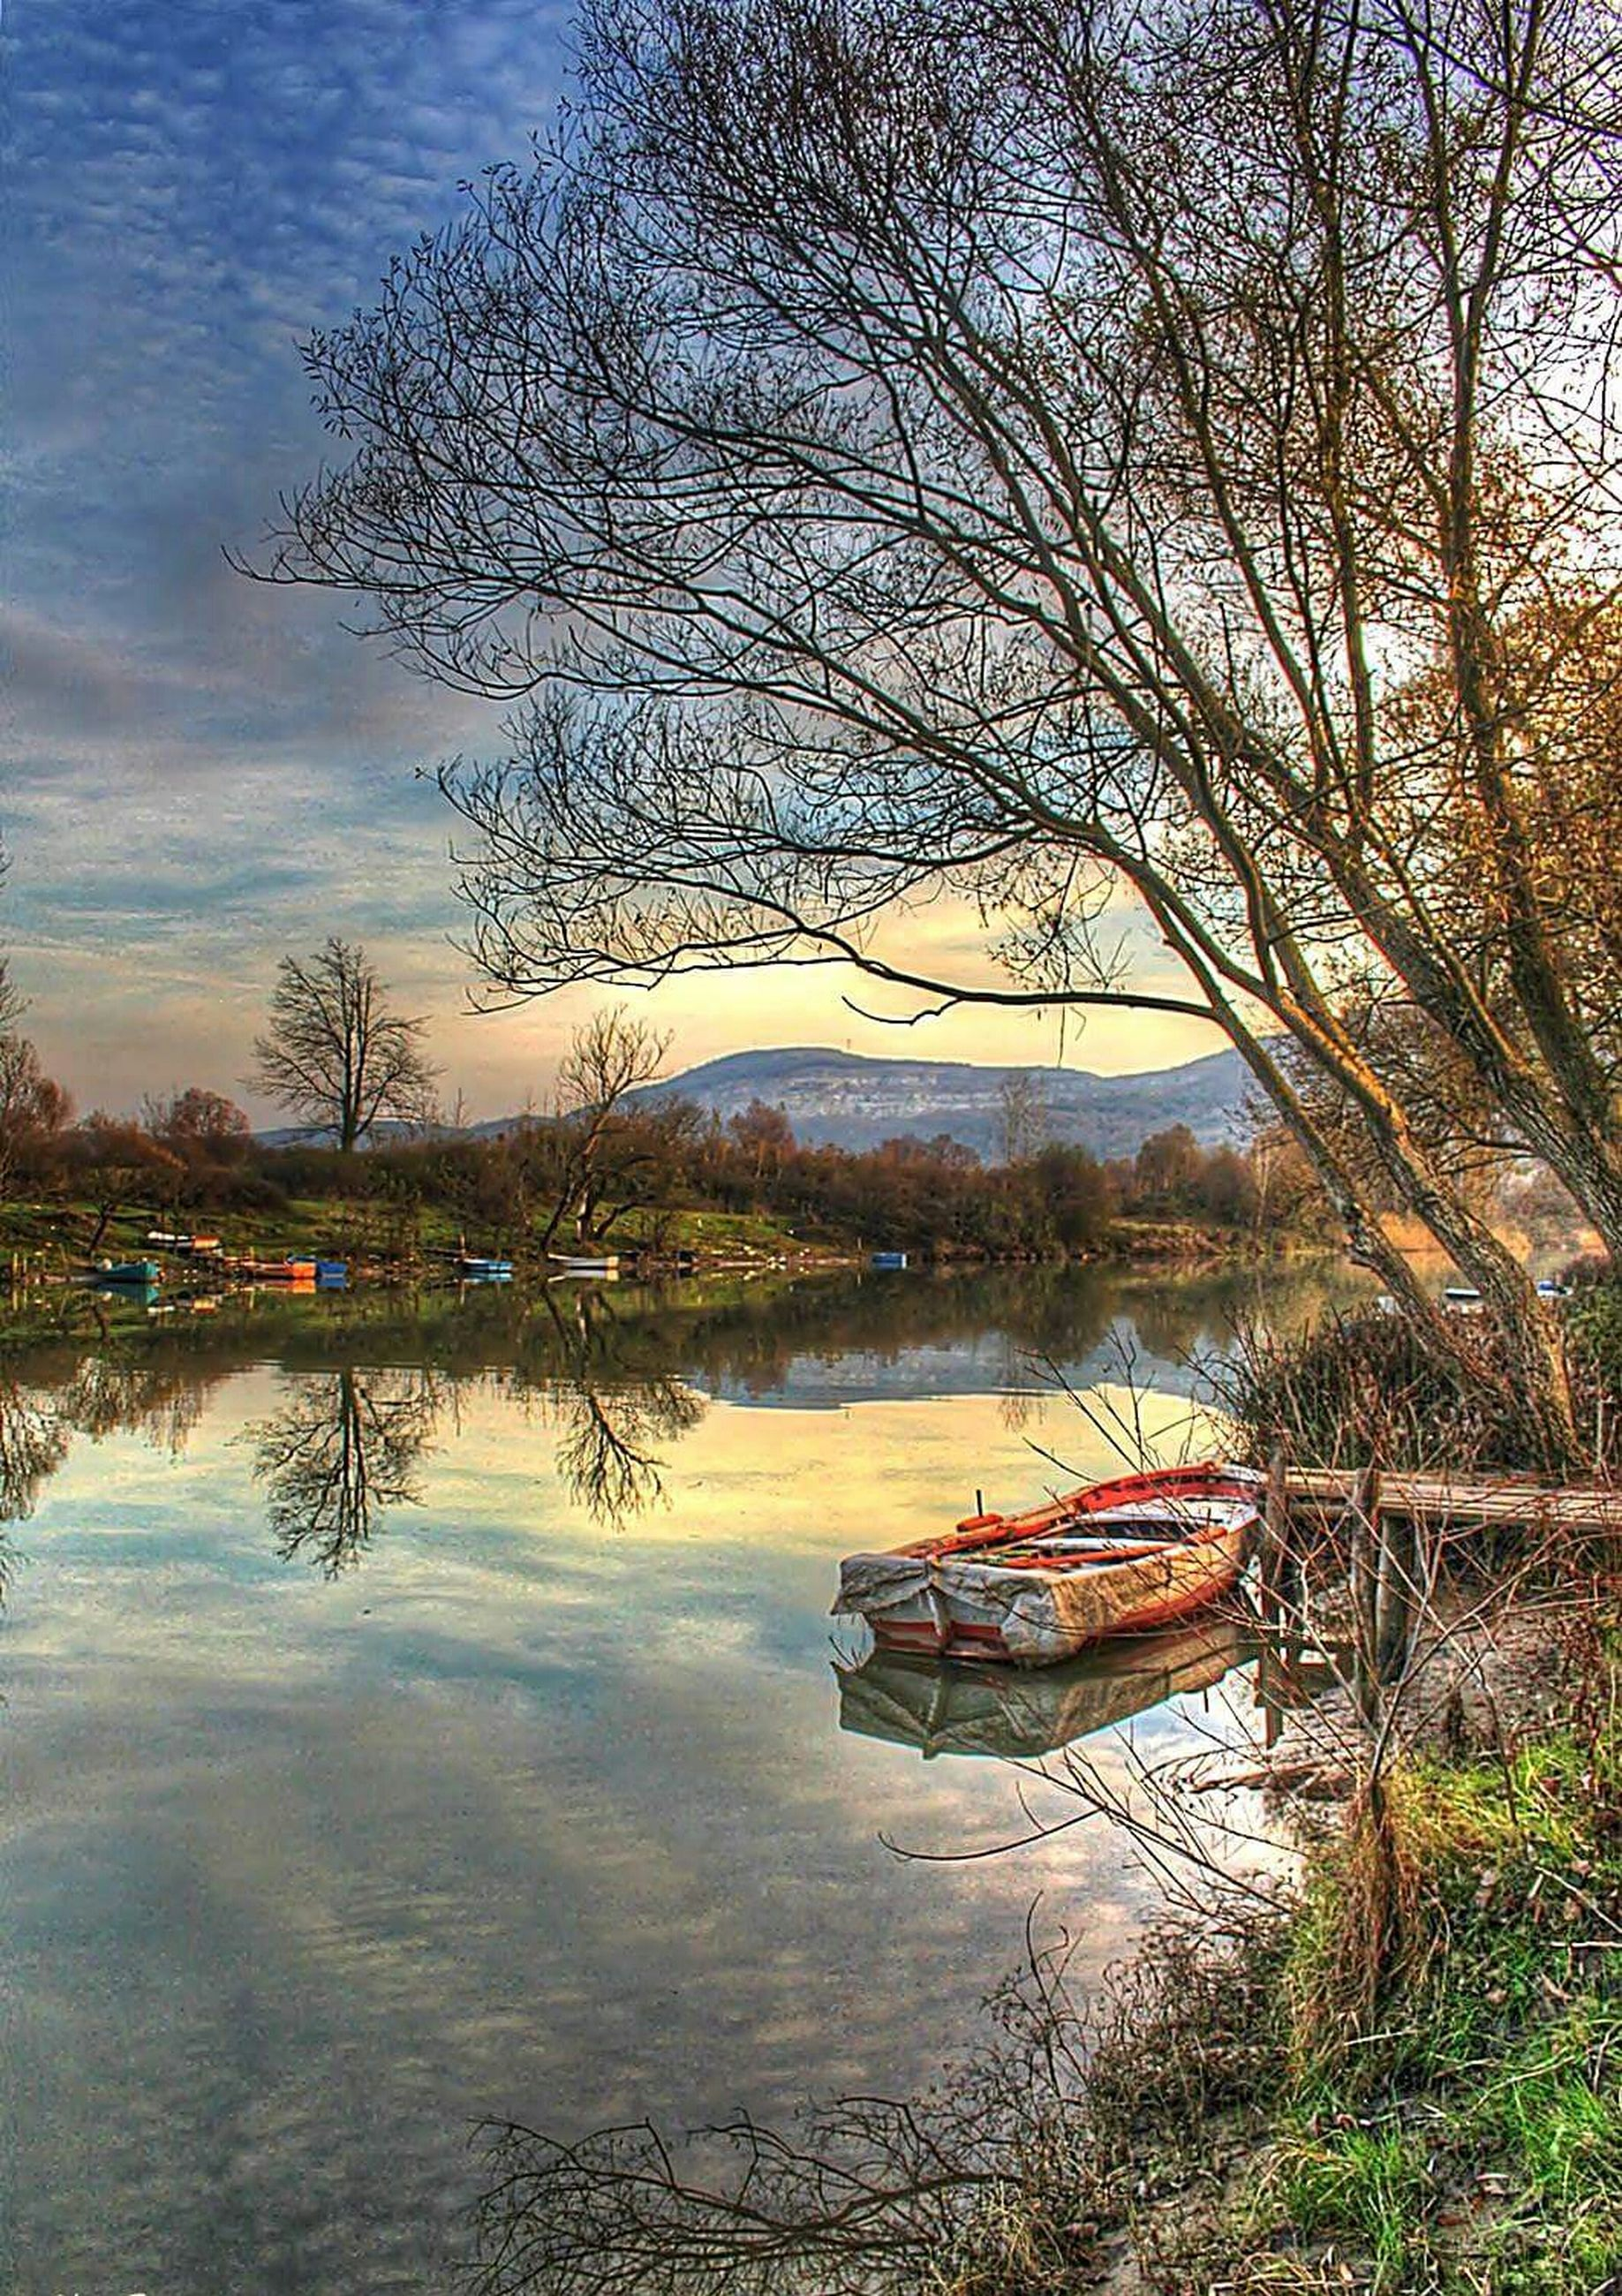 nautical vessel, boat, water, transportation, mode of transport, moored, tree, lake, tranquility, sky, reflection, tranquil scene, nature, beauty in nature, scenics, river, waterfront, bare tree, travel, branch